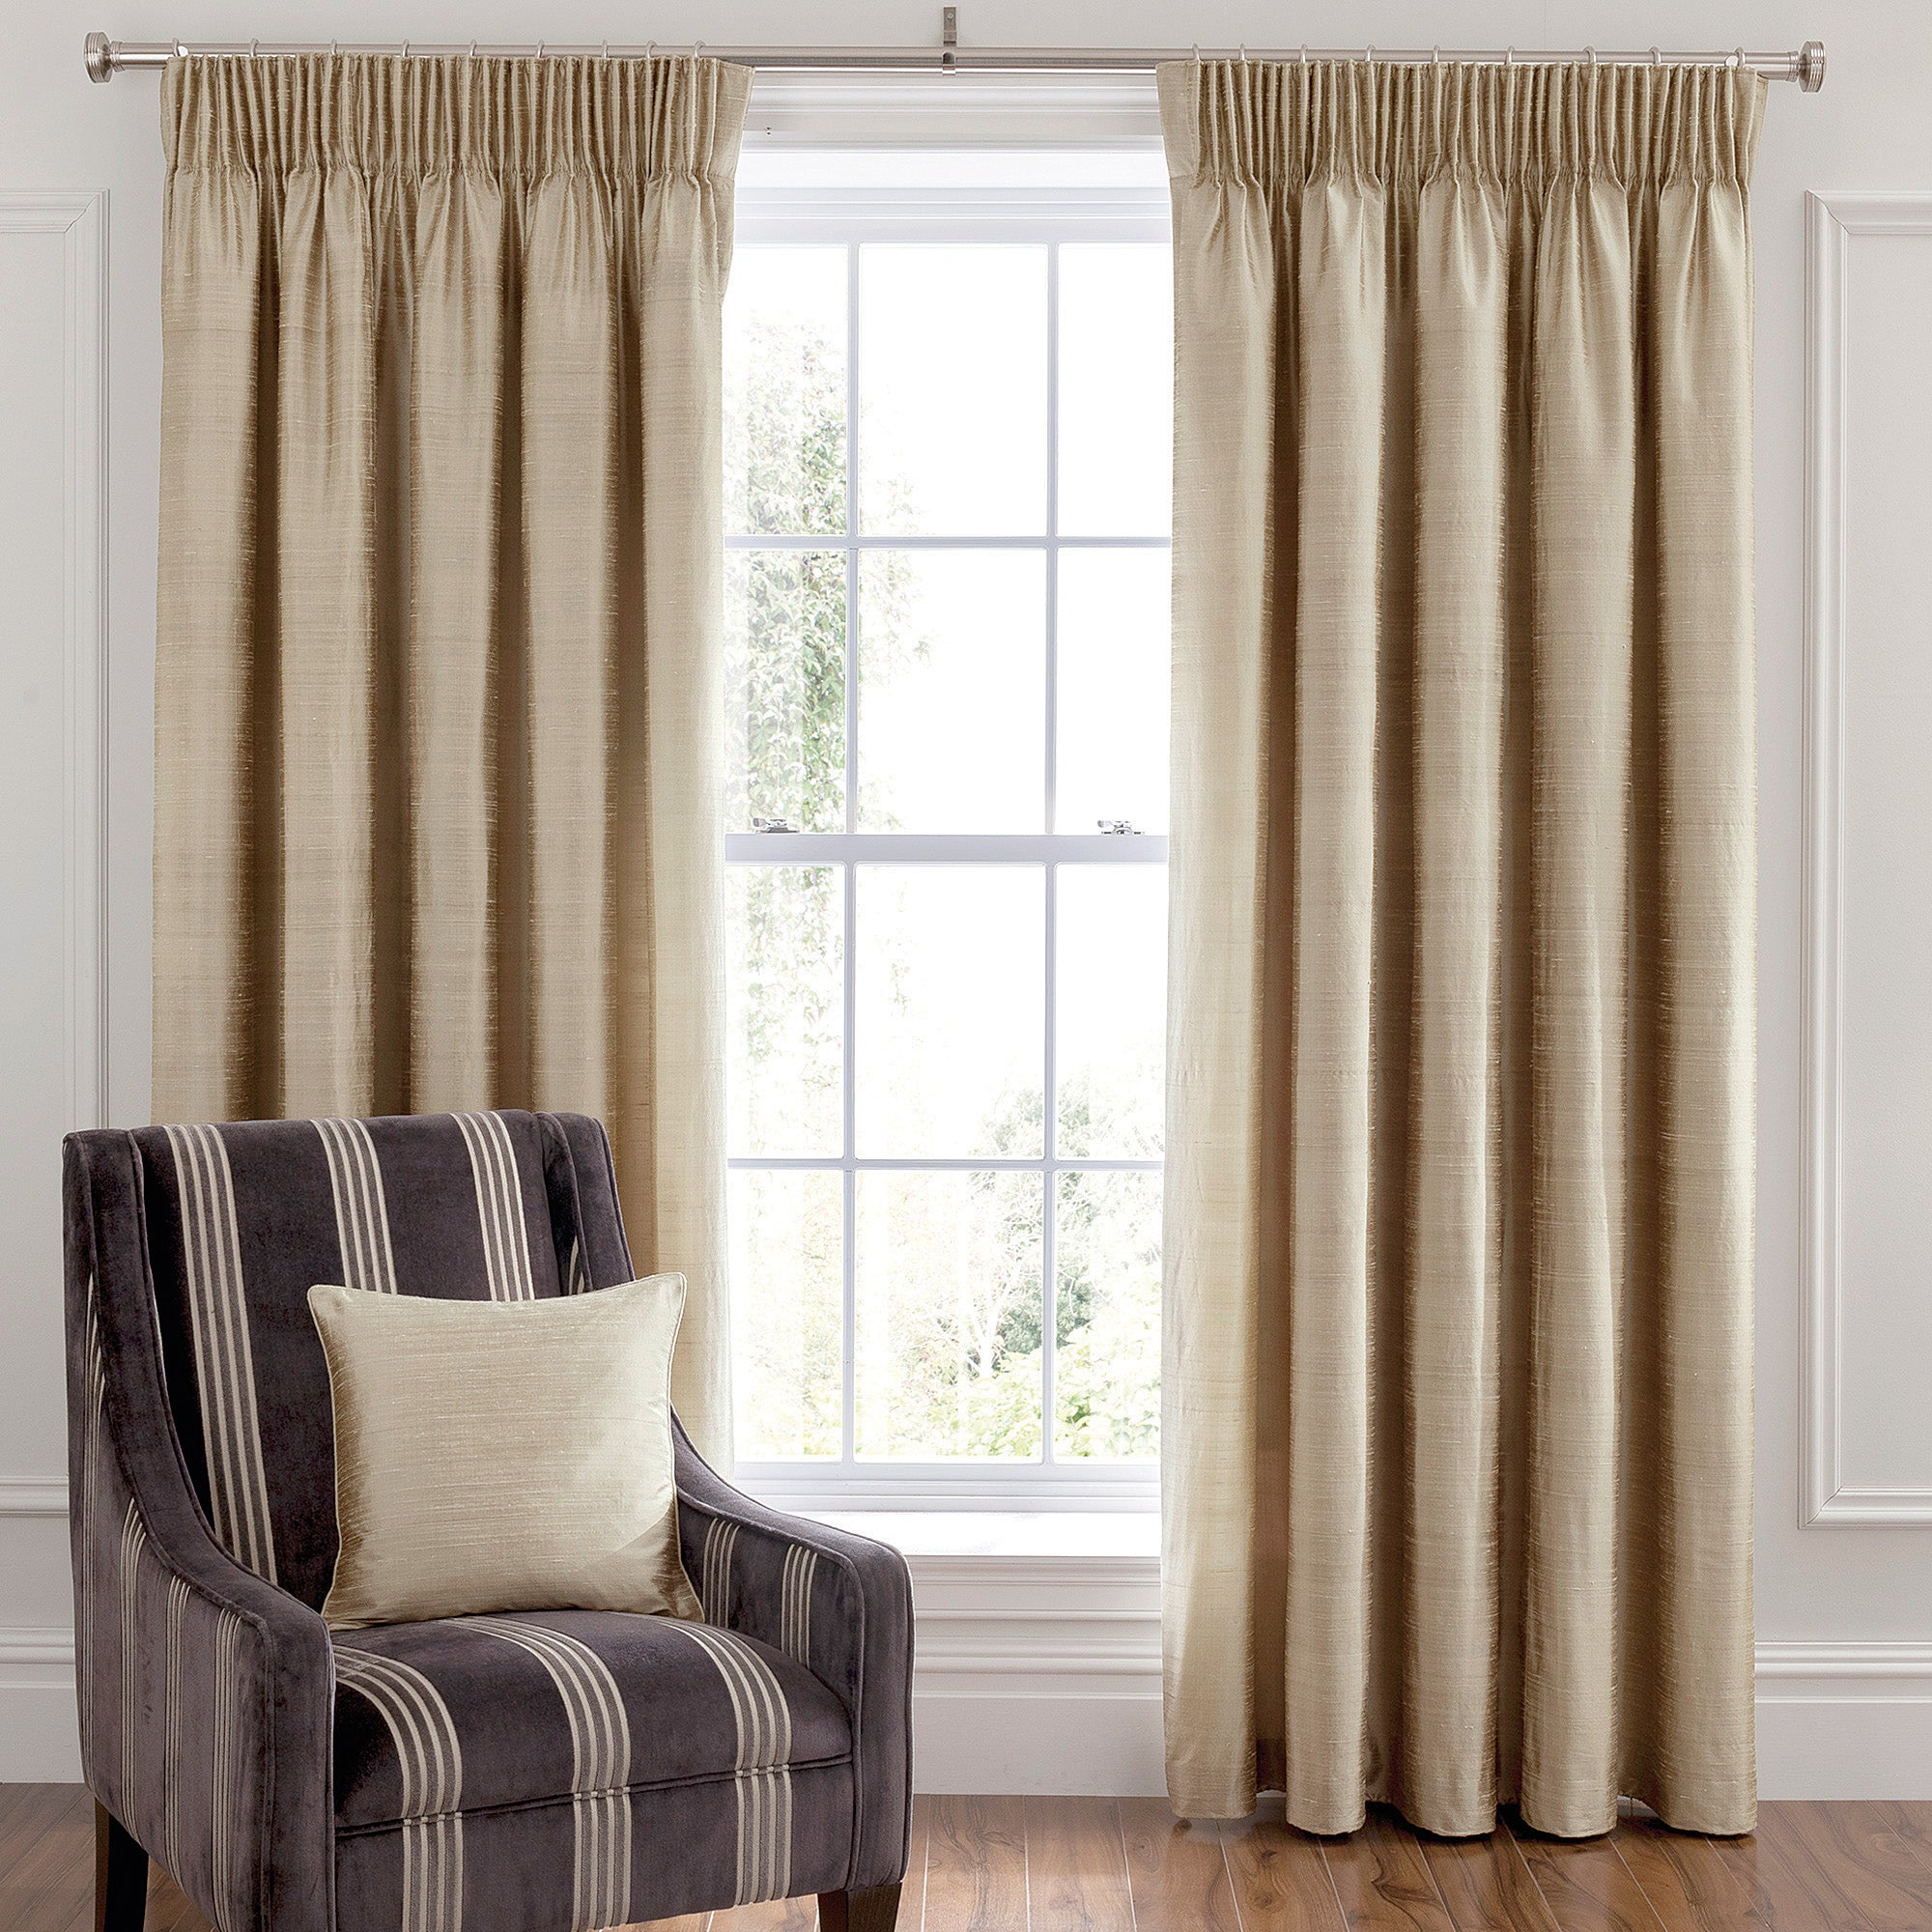 Dorma Champagne Beresford Lined Pencil Pleat Curtains